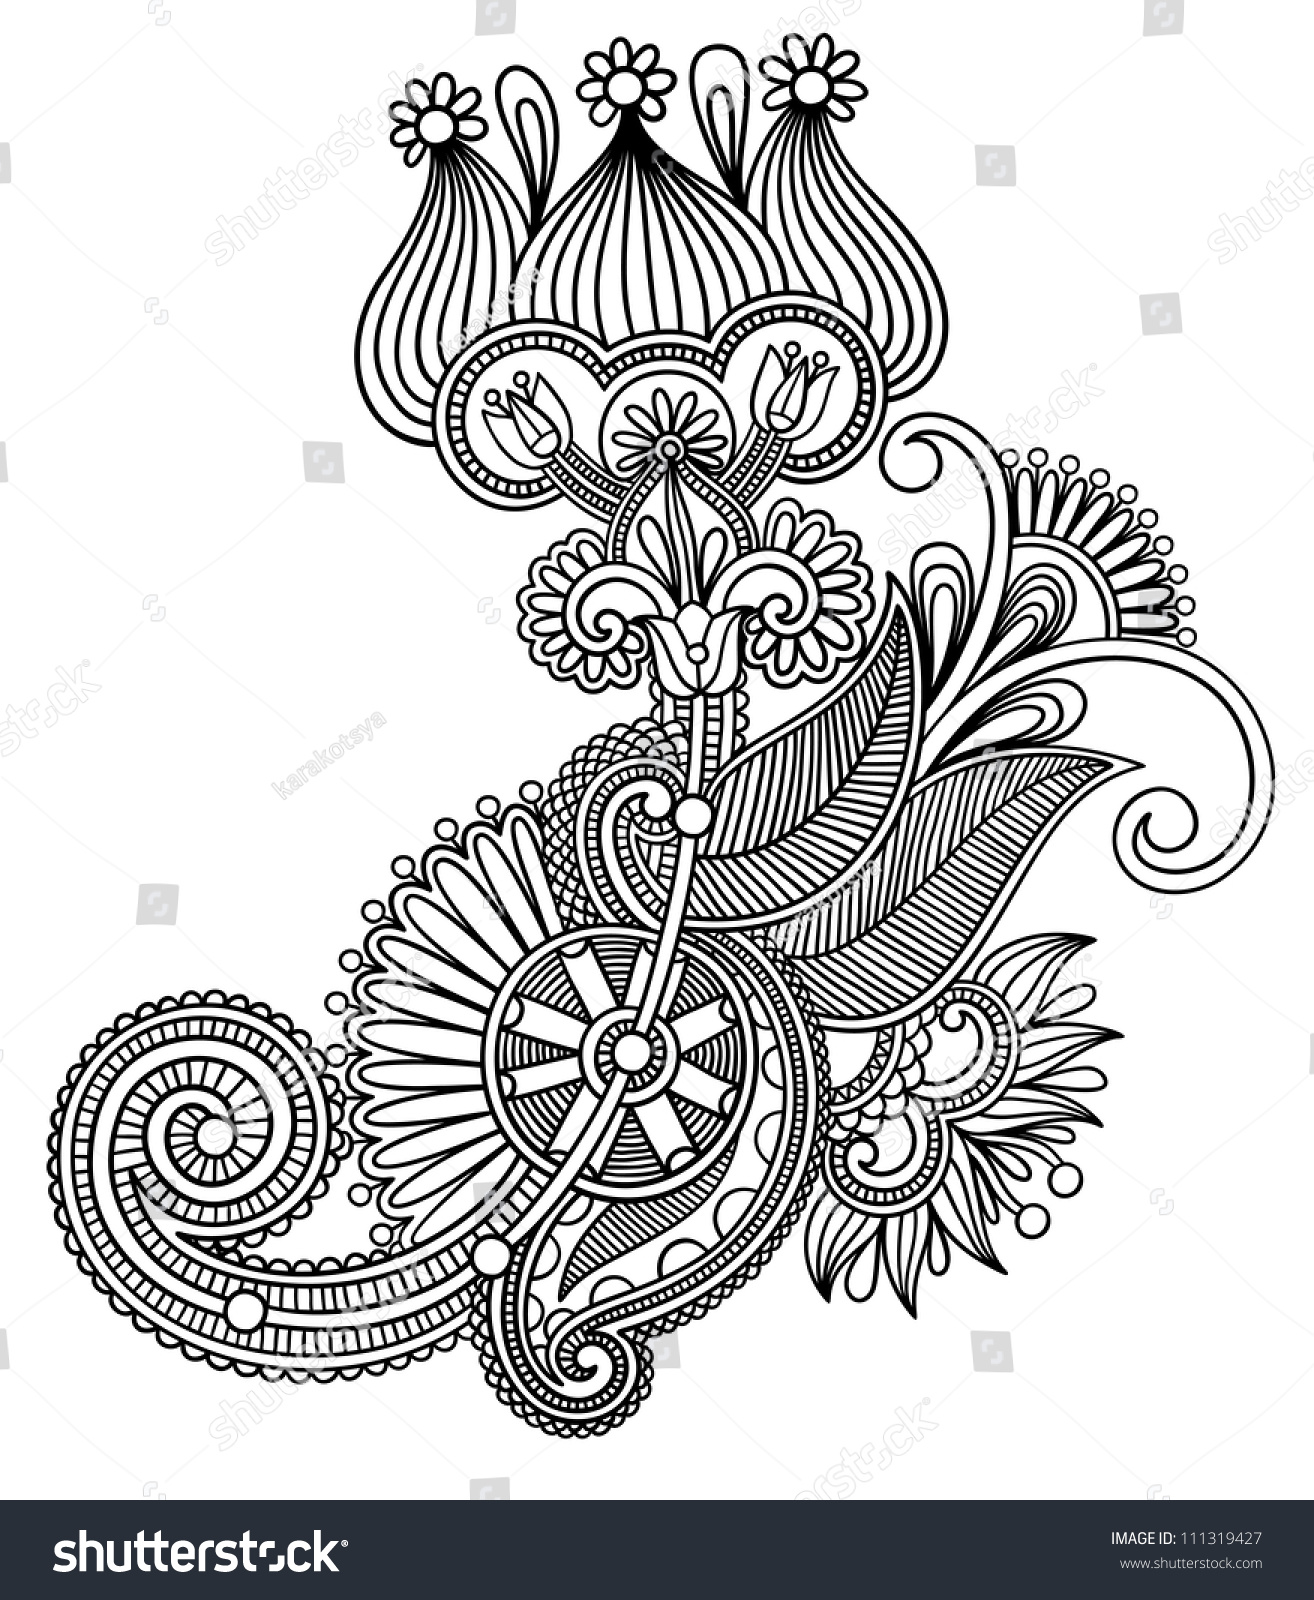 Traditional Flower Line Drawing : Original hand draw line art ornate stock vector